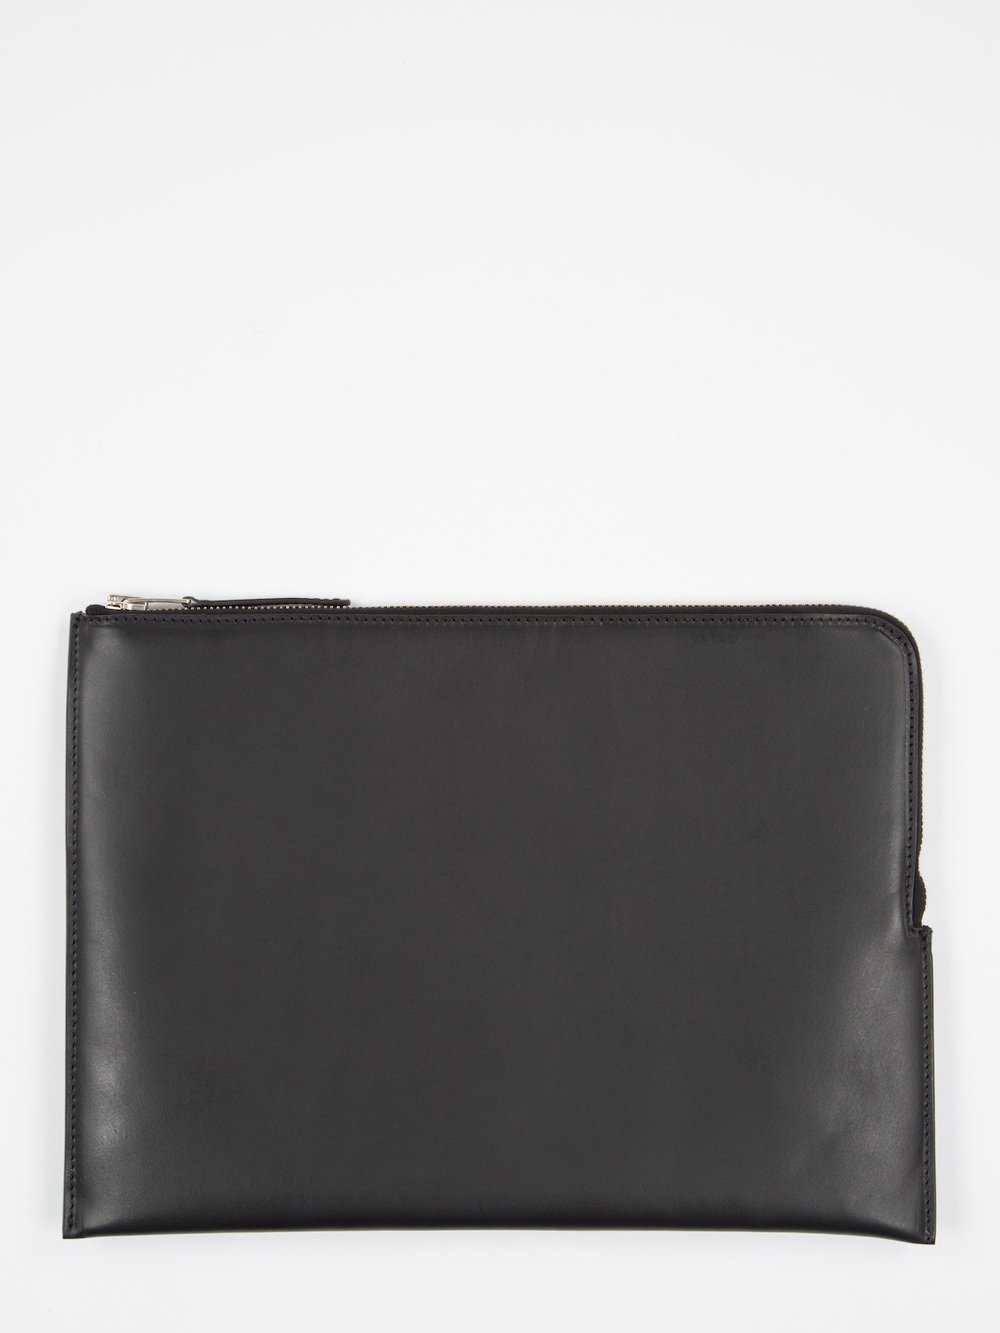 RICK OWENS - SMALL ZIPPED ENVELOPE